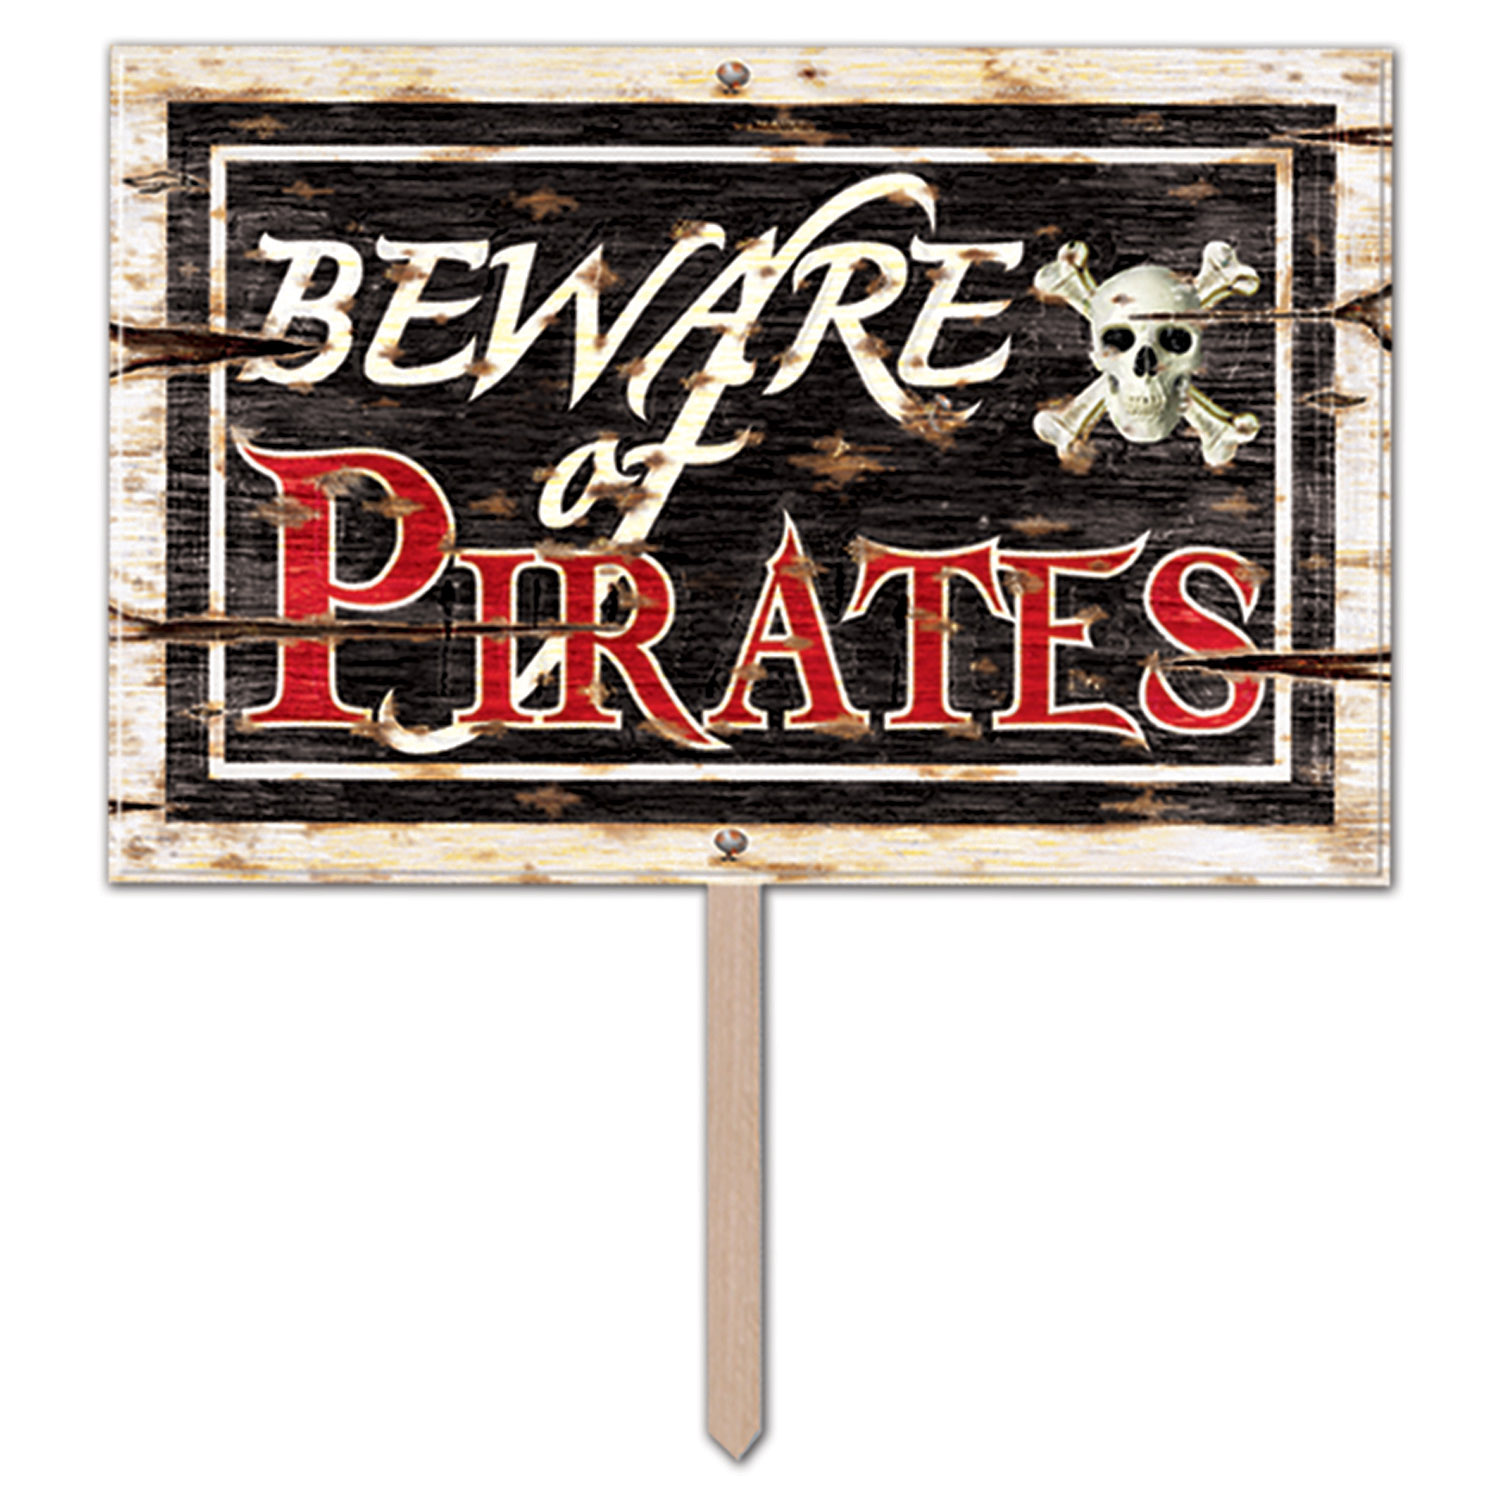 3-D Plastic Beware Of Pirates Yard Sign (Pack of 6) 3-D Plastic Beware Of Pirates Yard Sign, decoration, pirate, new years eve, halloween, wholesale, inexpensive, bulk